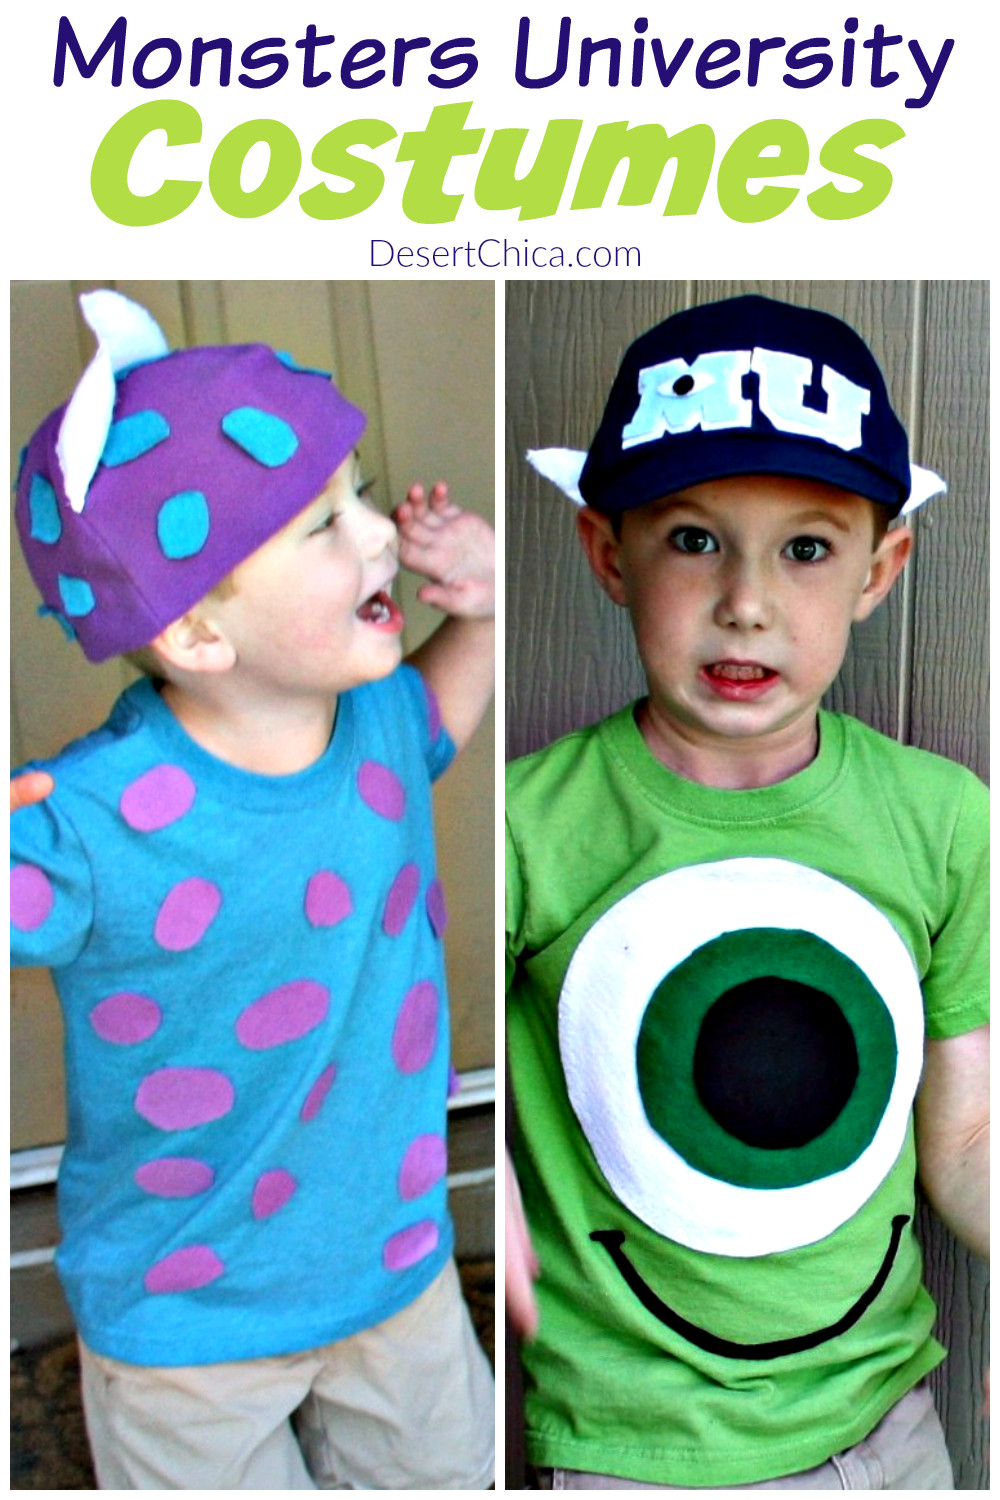 Best ideas about DIY Monsters Inc Costume . Save or Pin DIY Monsters University Costumes Now.